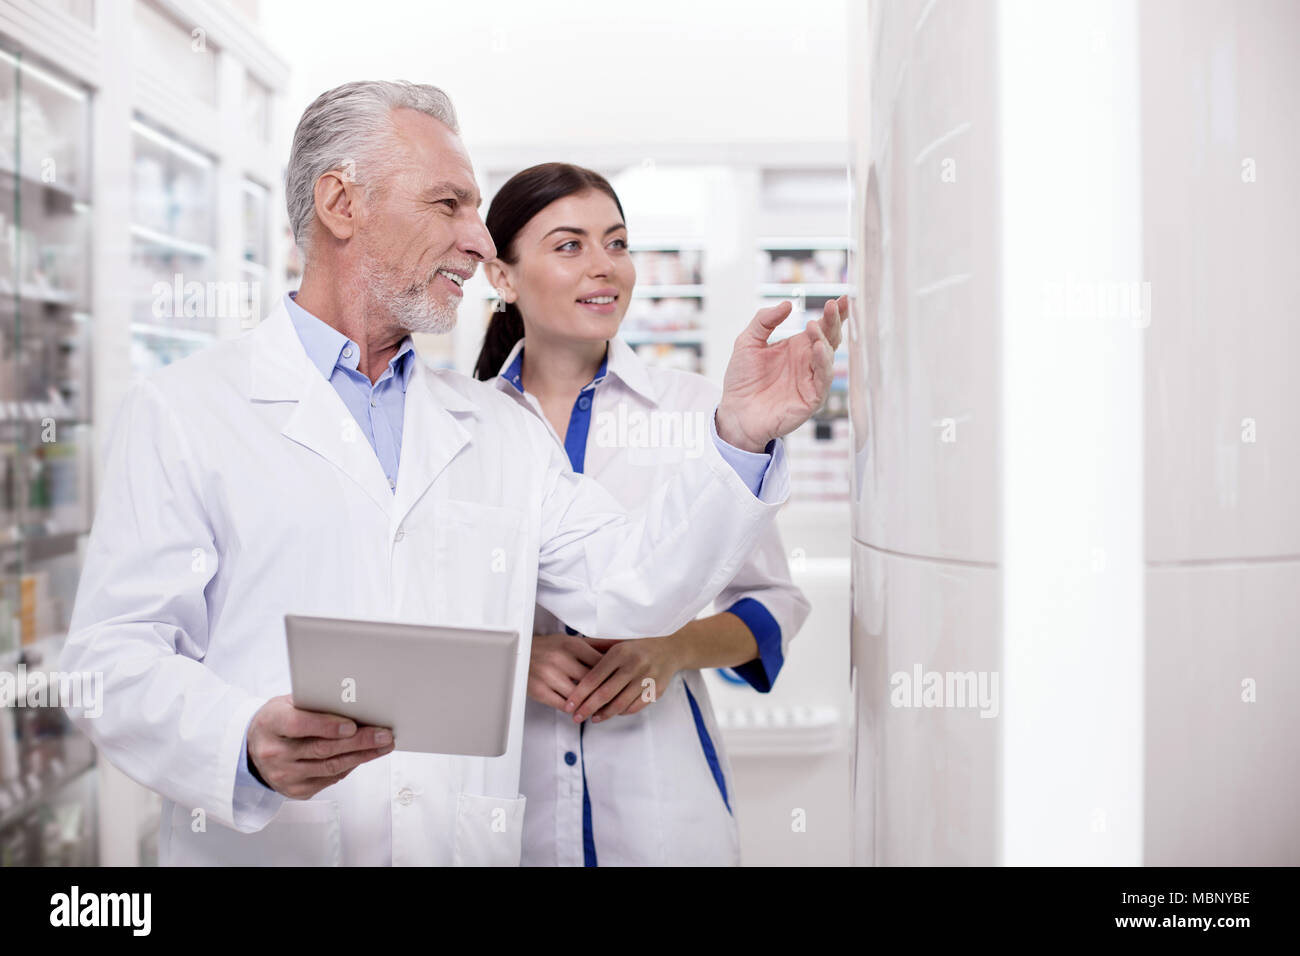 Musing two pharmacists collaborating - Stock Image